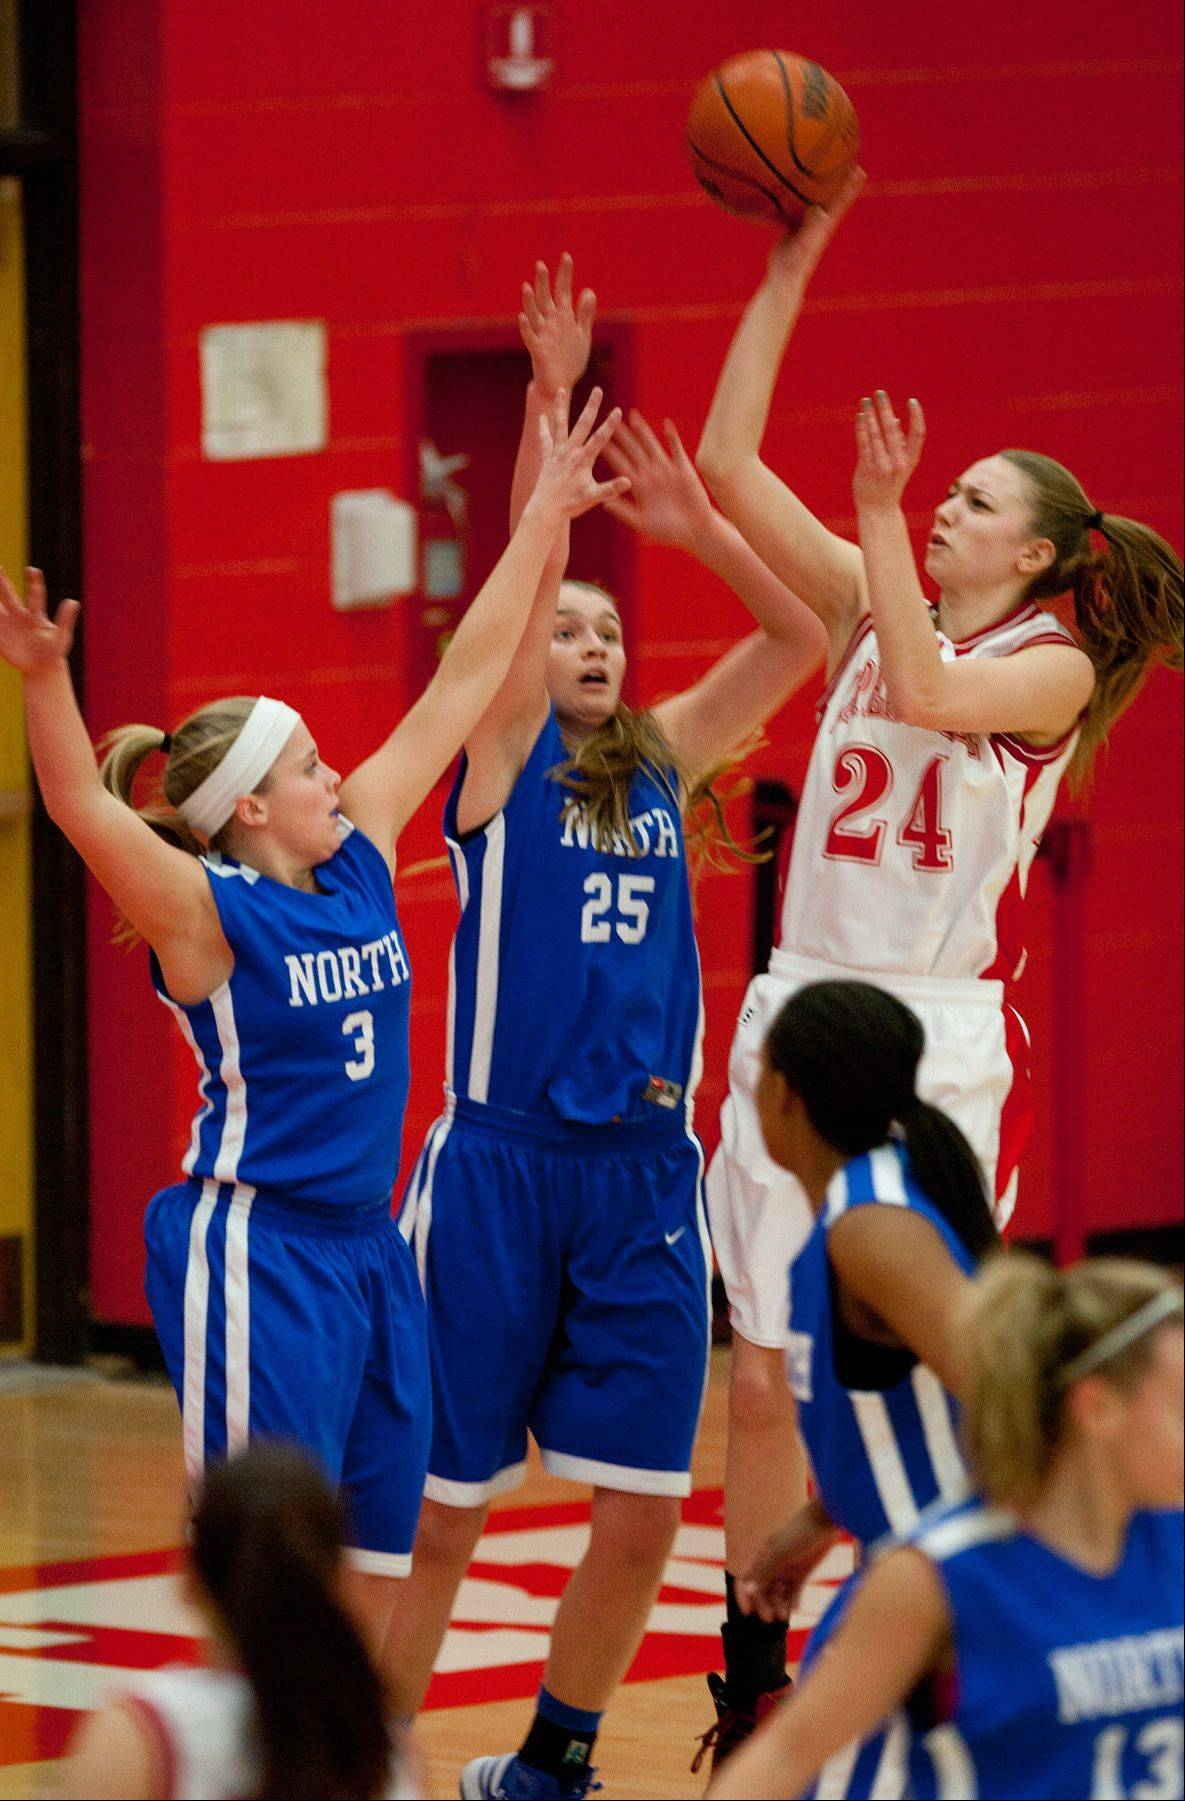 Naperville Central's Jamie Cuny (24), eyes the rim over Wheaton North, during girls basketball action in Naperville